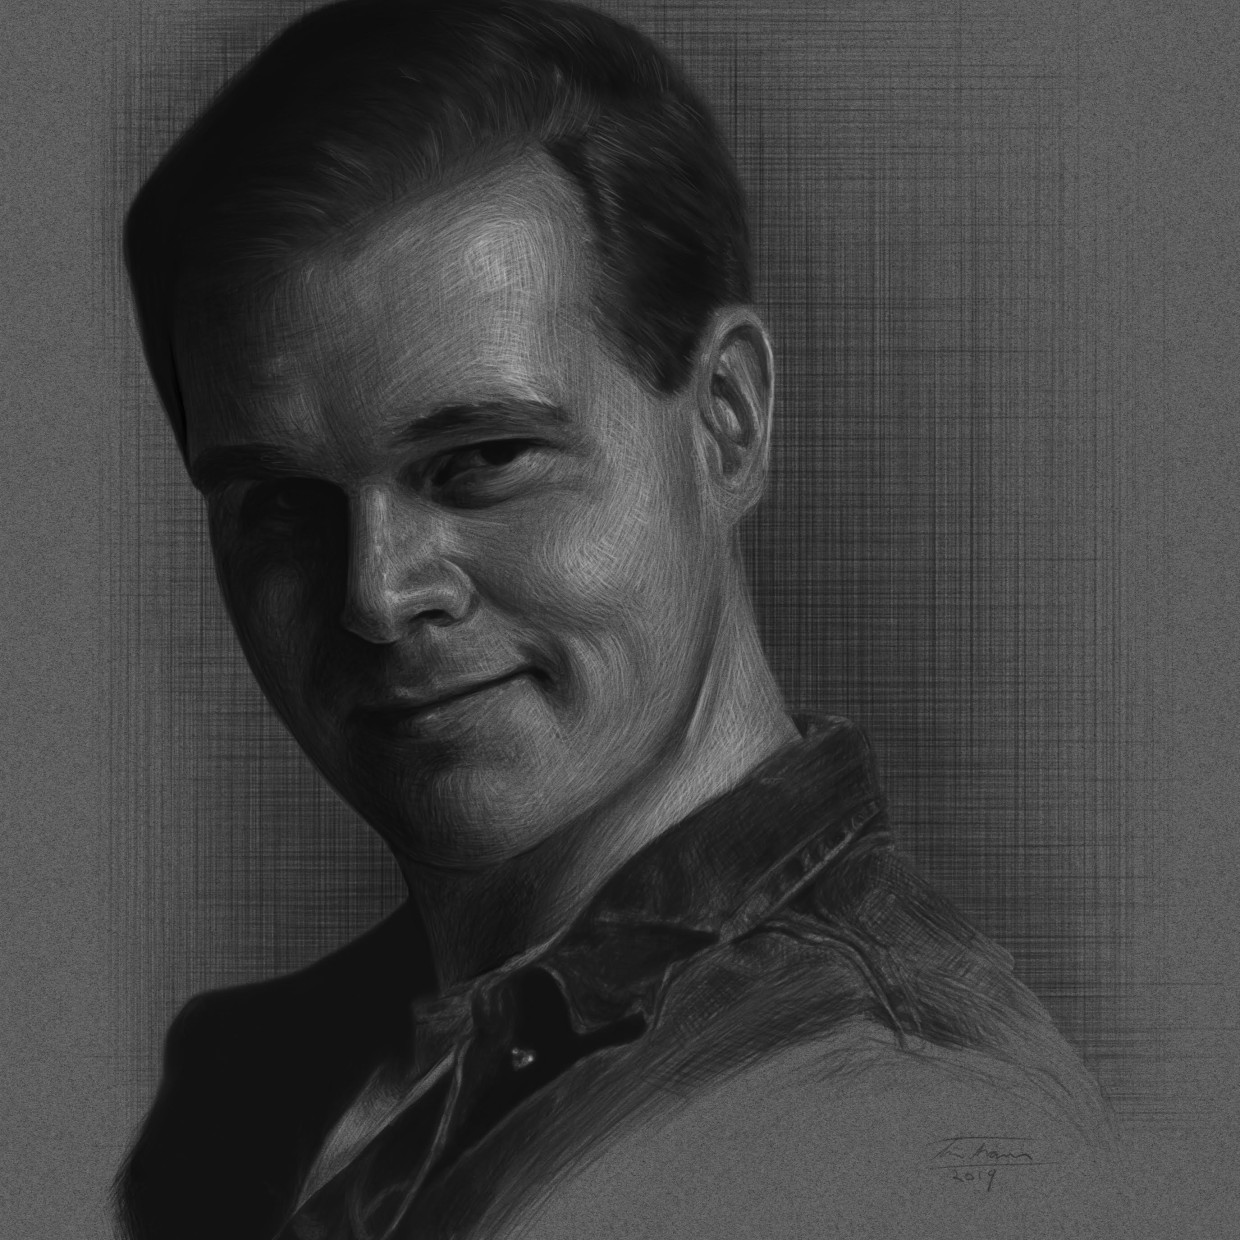 Award-winning visual artist Tim Nardelli is not only an artist, but a filmmaker as well. Passionate about drawing and painting...